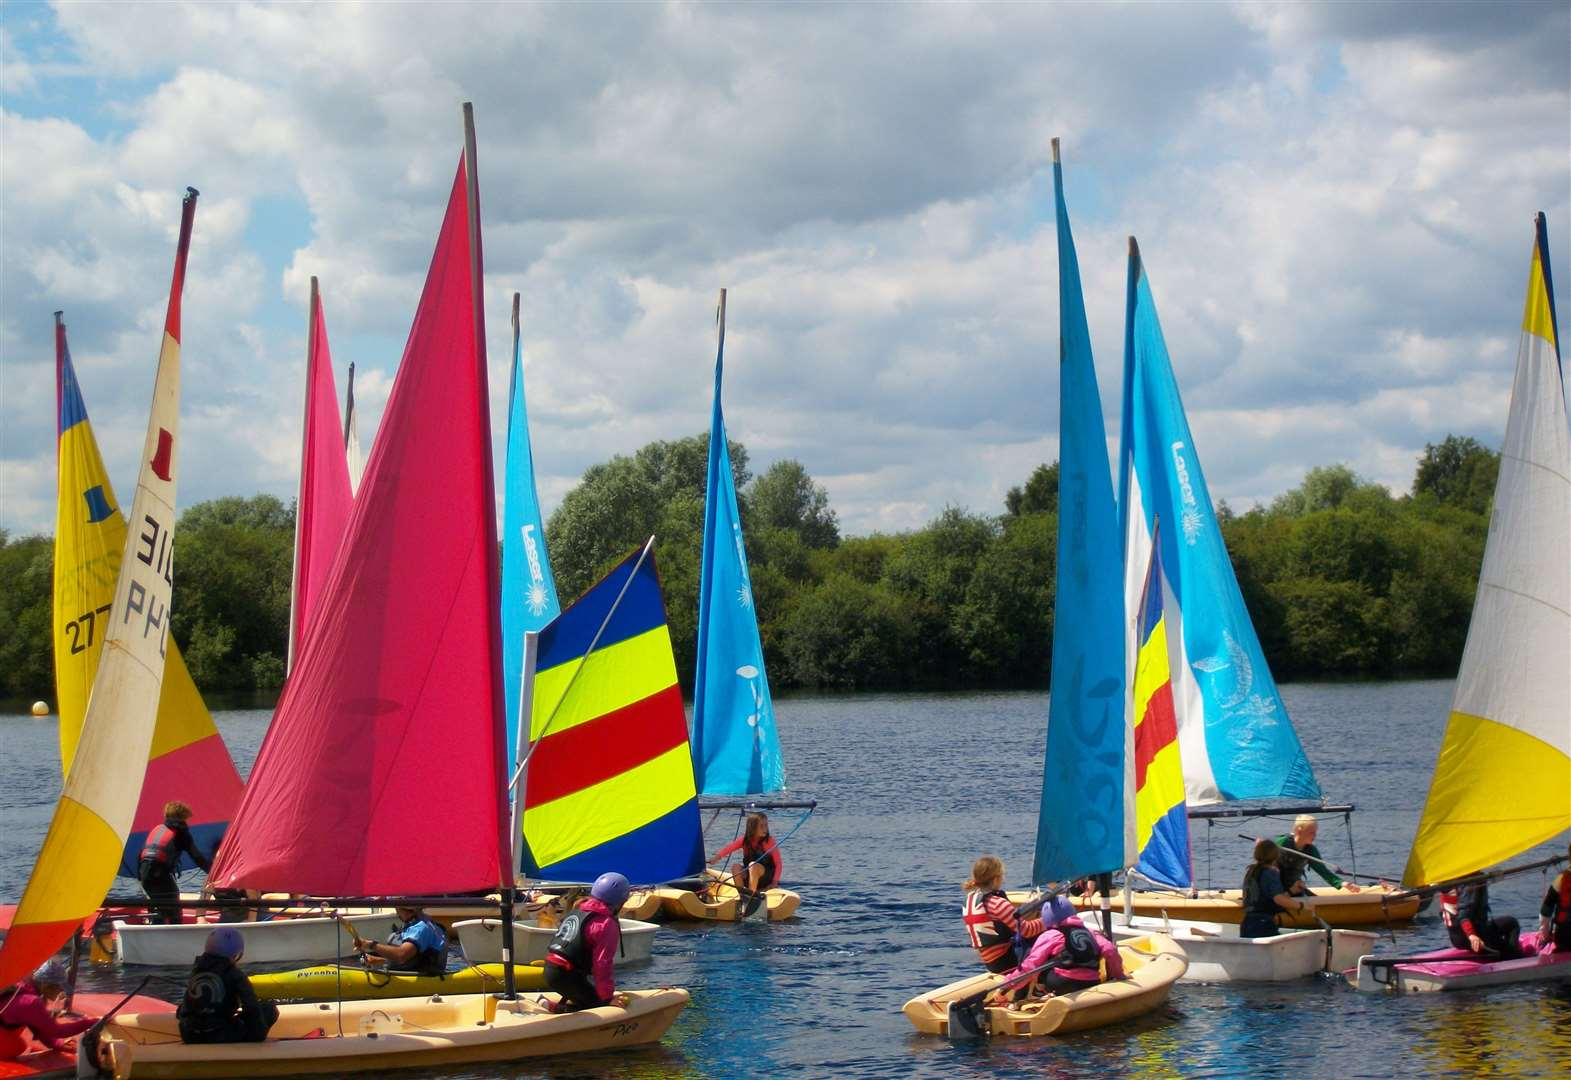 Pupils get onboard with sailing test